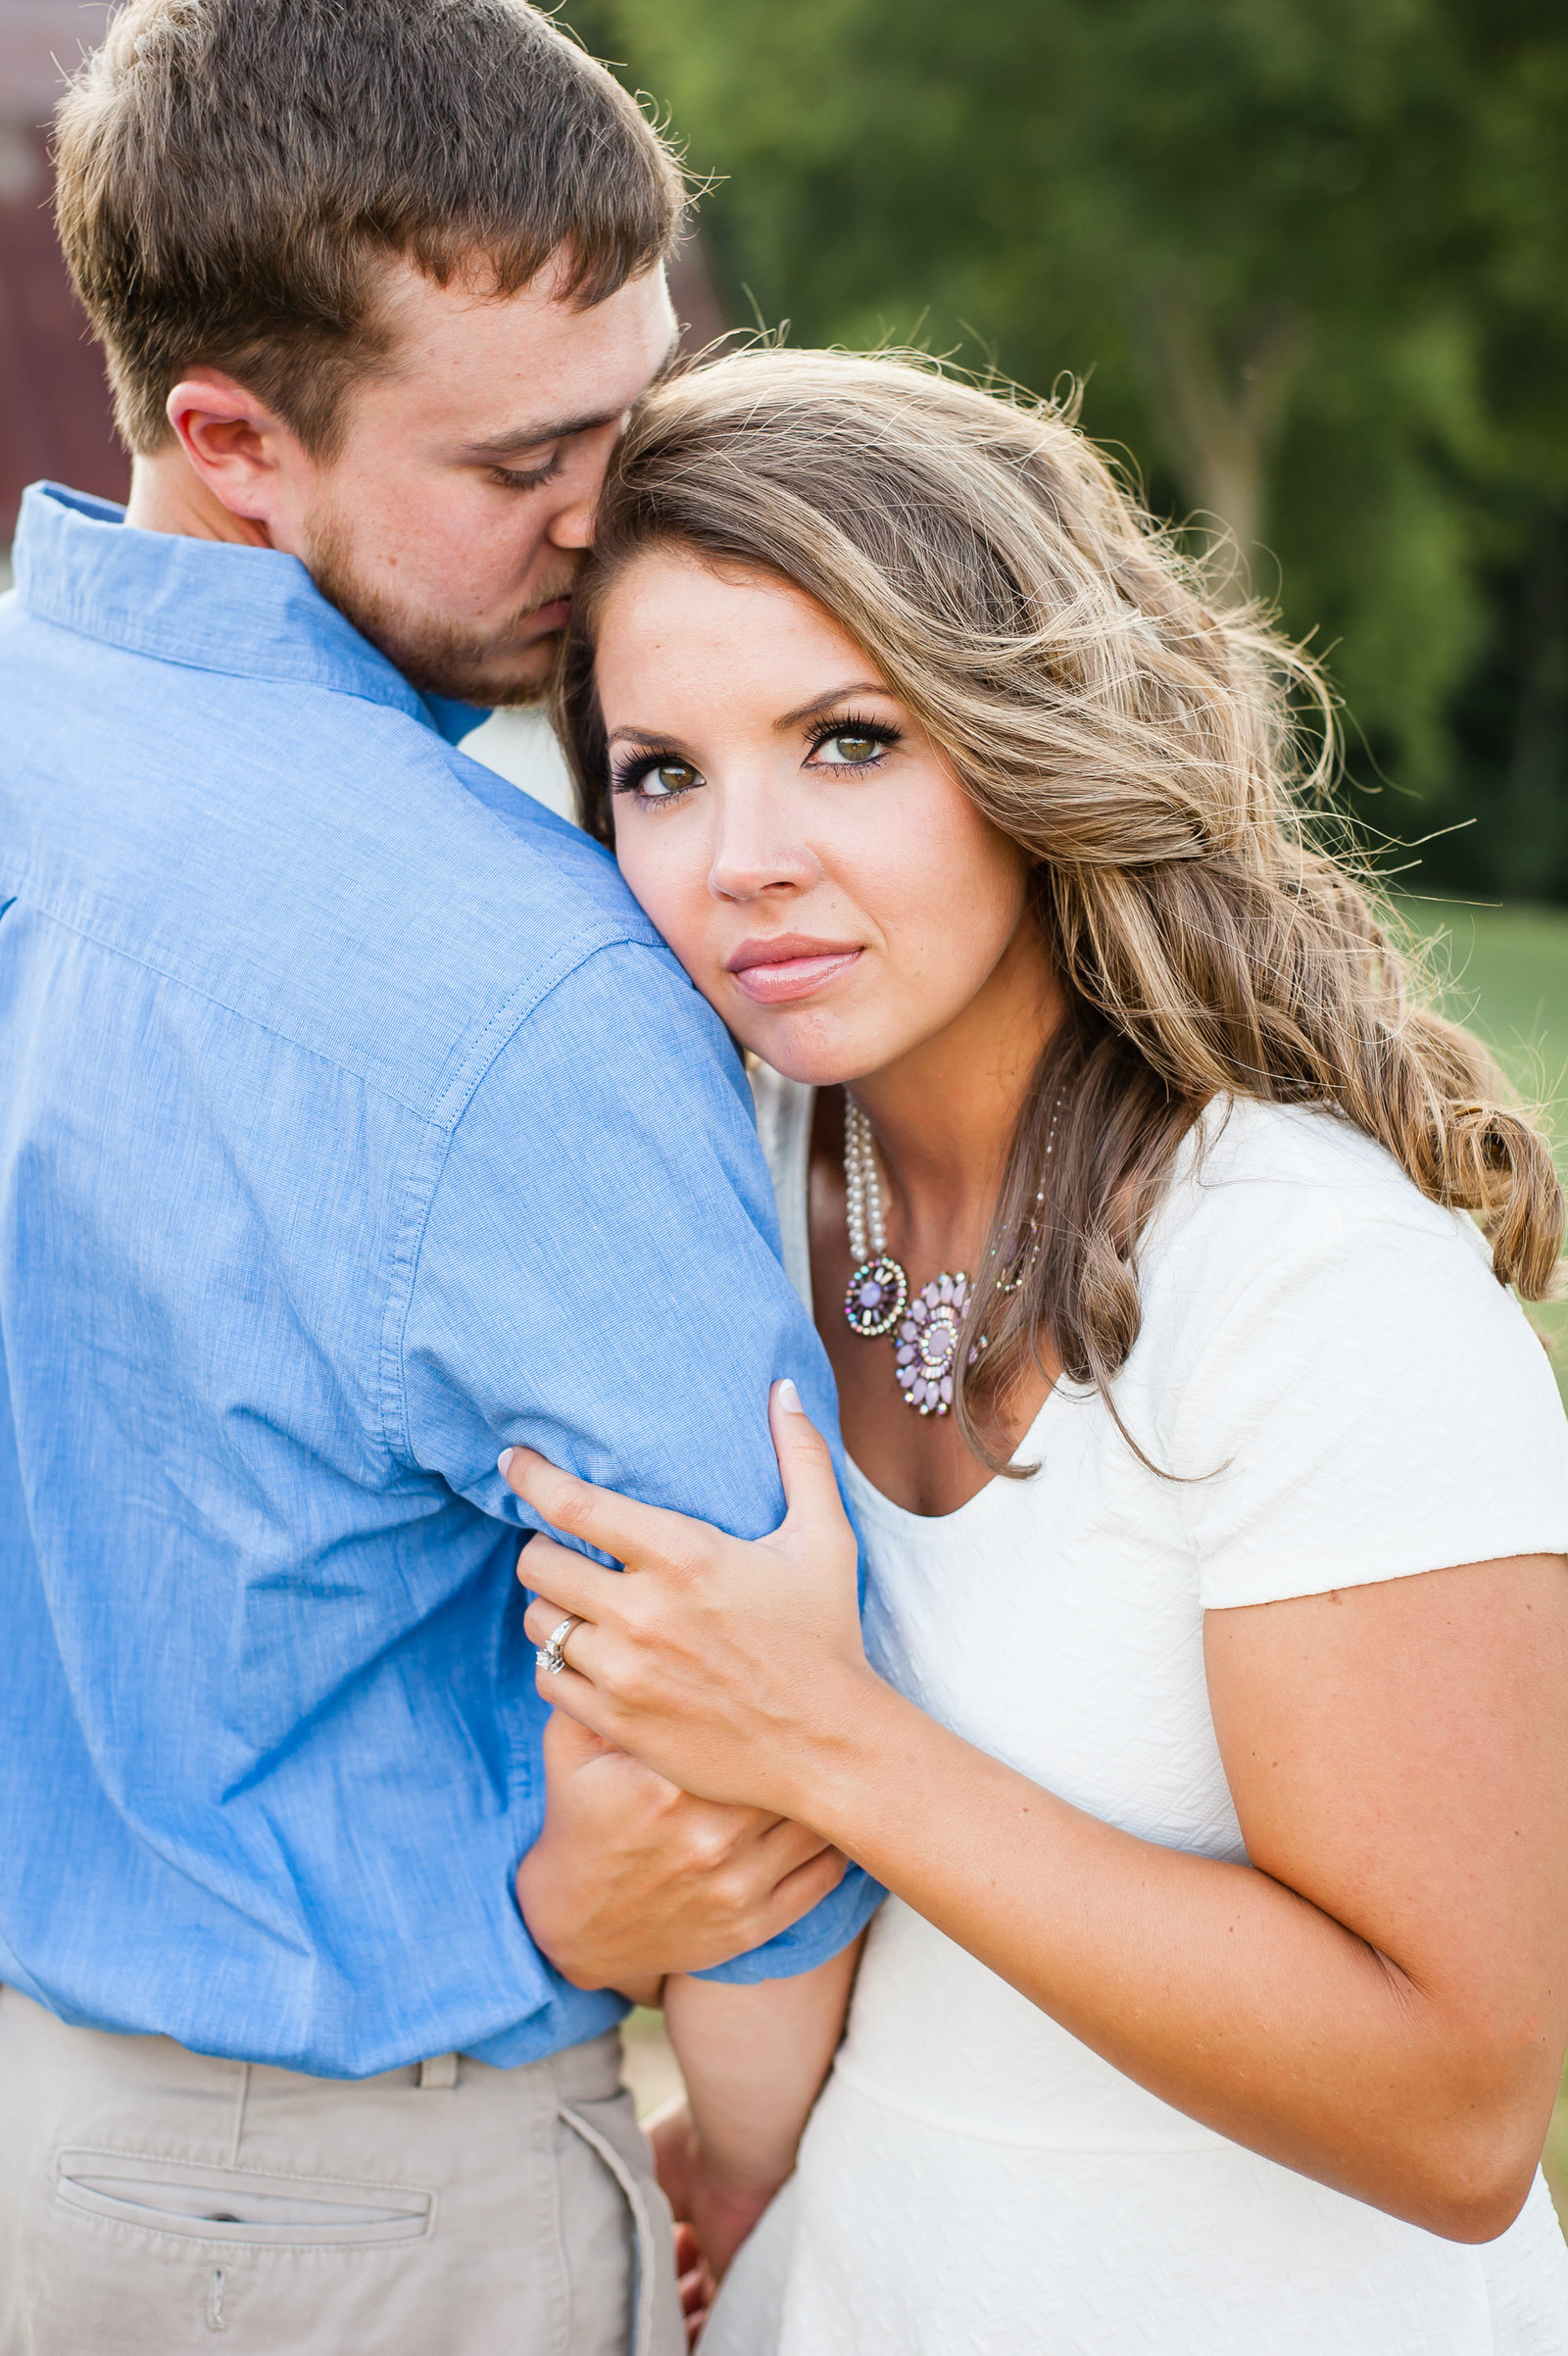 Ashley-and-Jake-Richmond-Engagement-Photos-Melissa-Desjardins-Photography-2